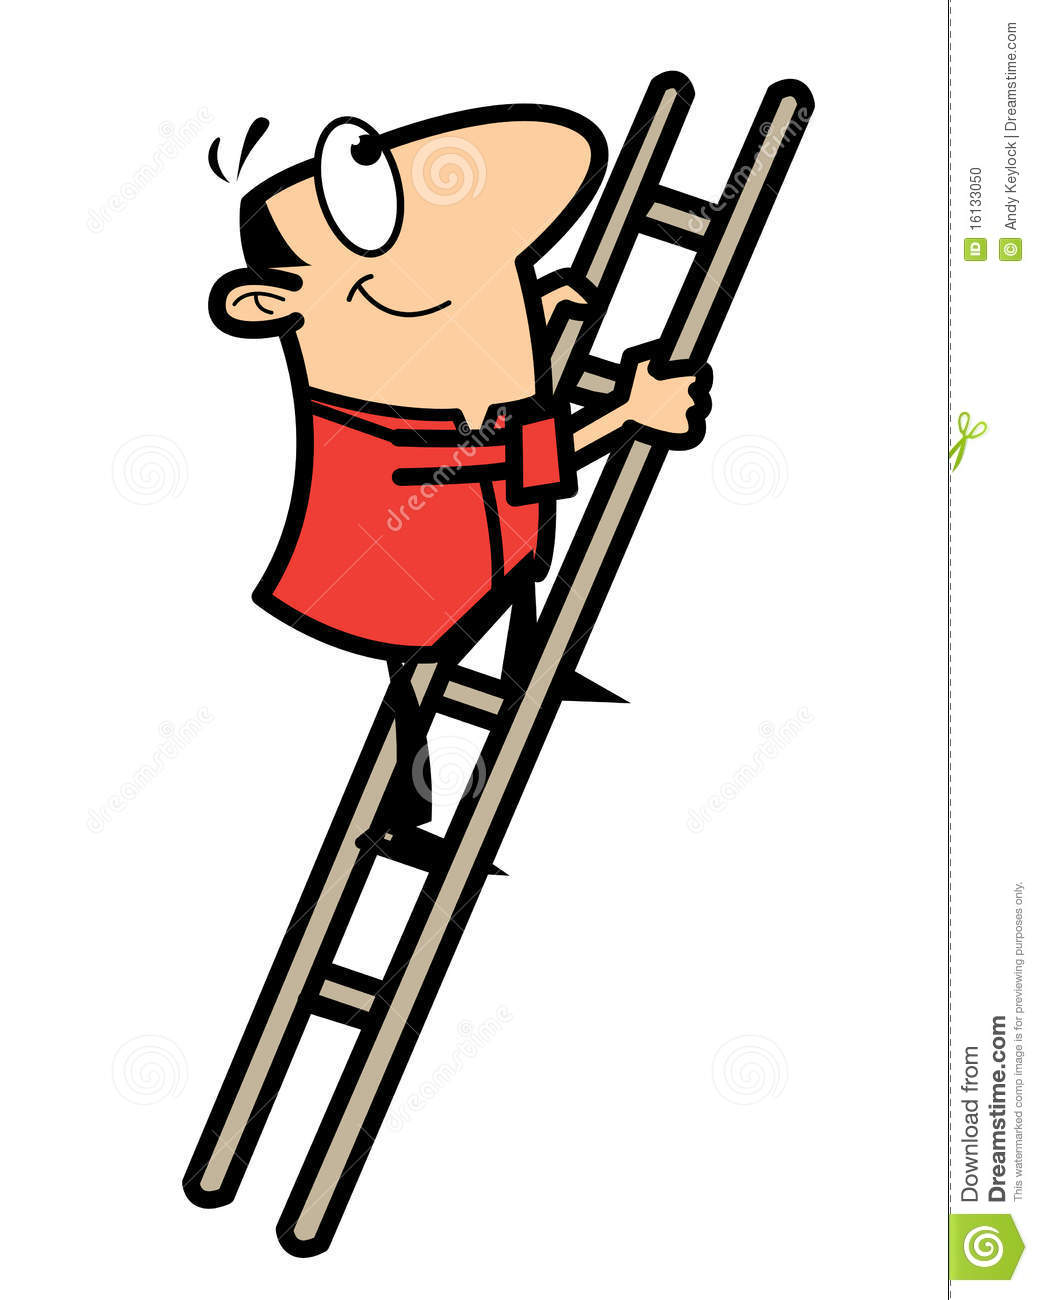 Cartoon Man Climbing Ladder Stock Vector Illustration Of